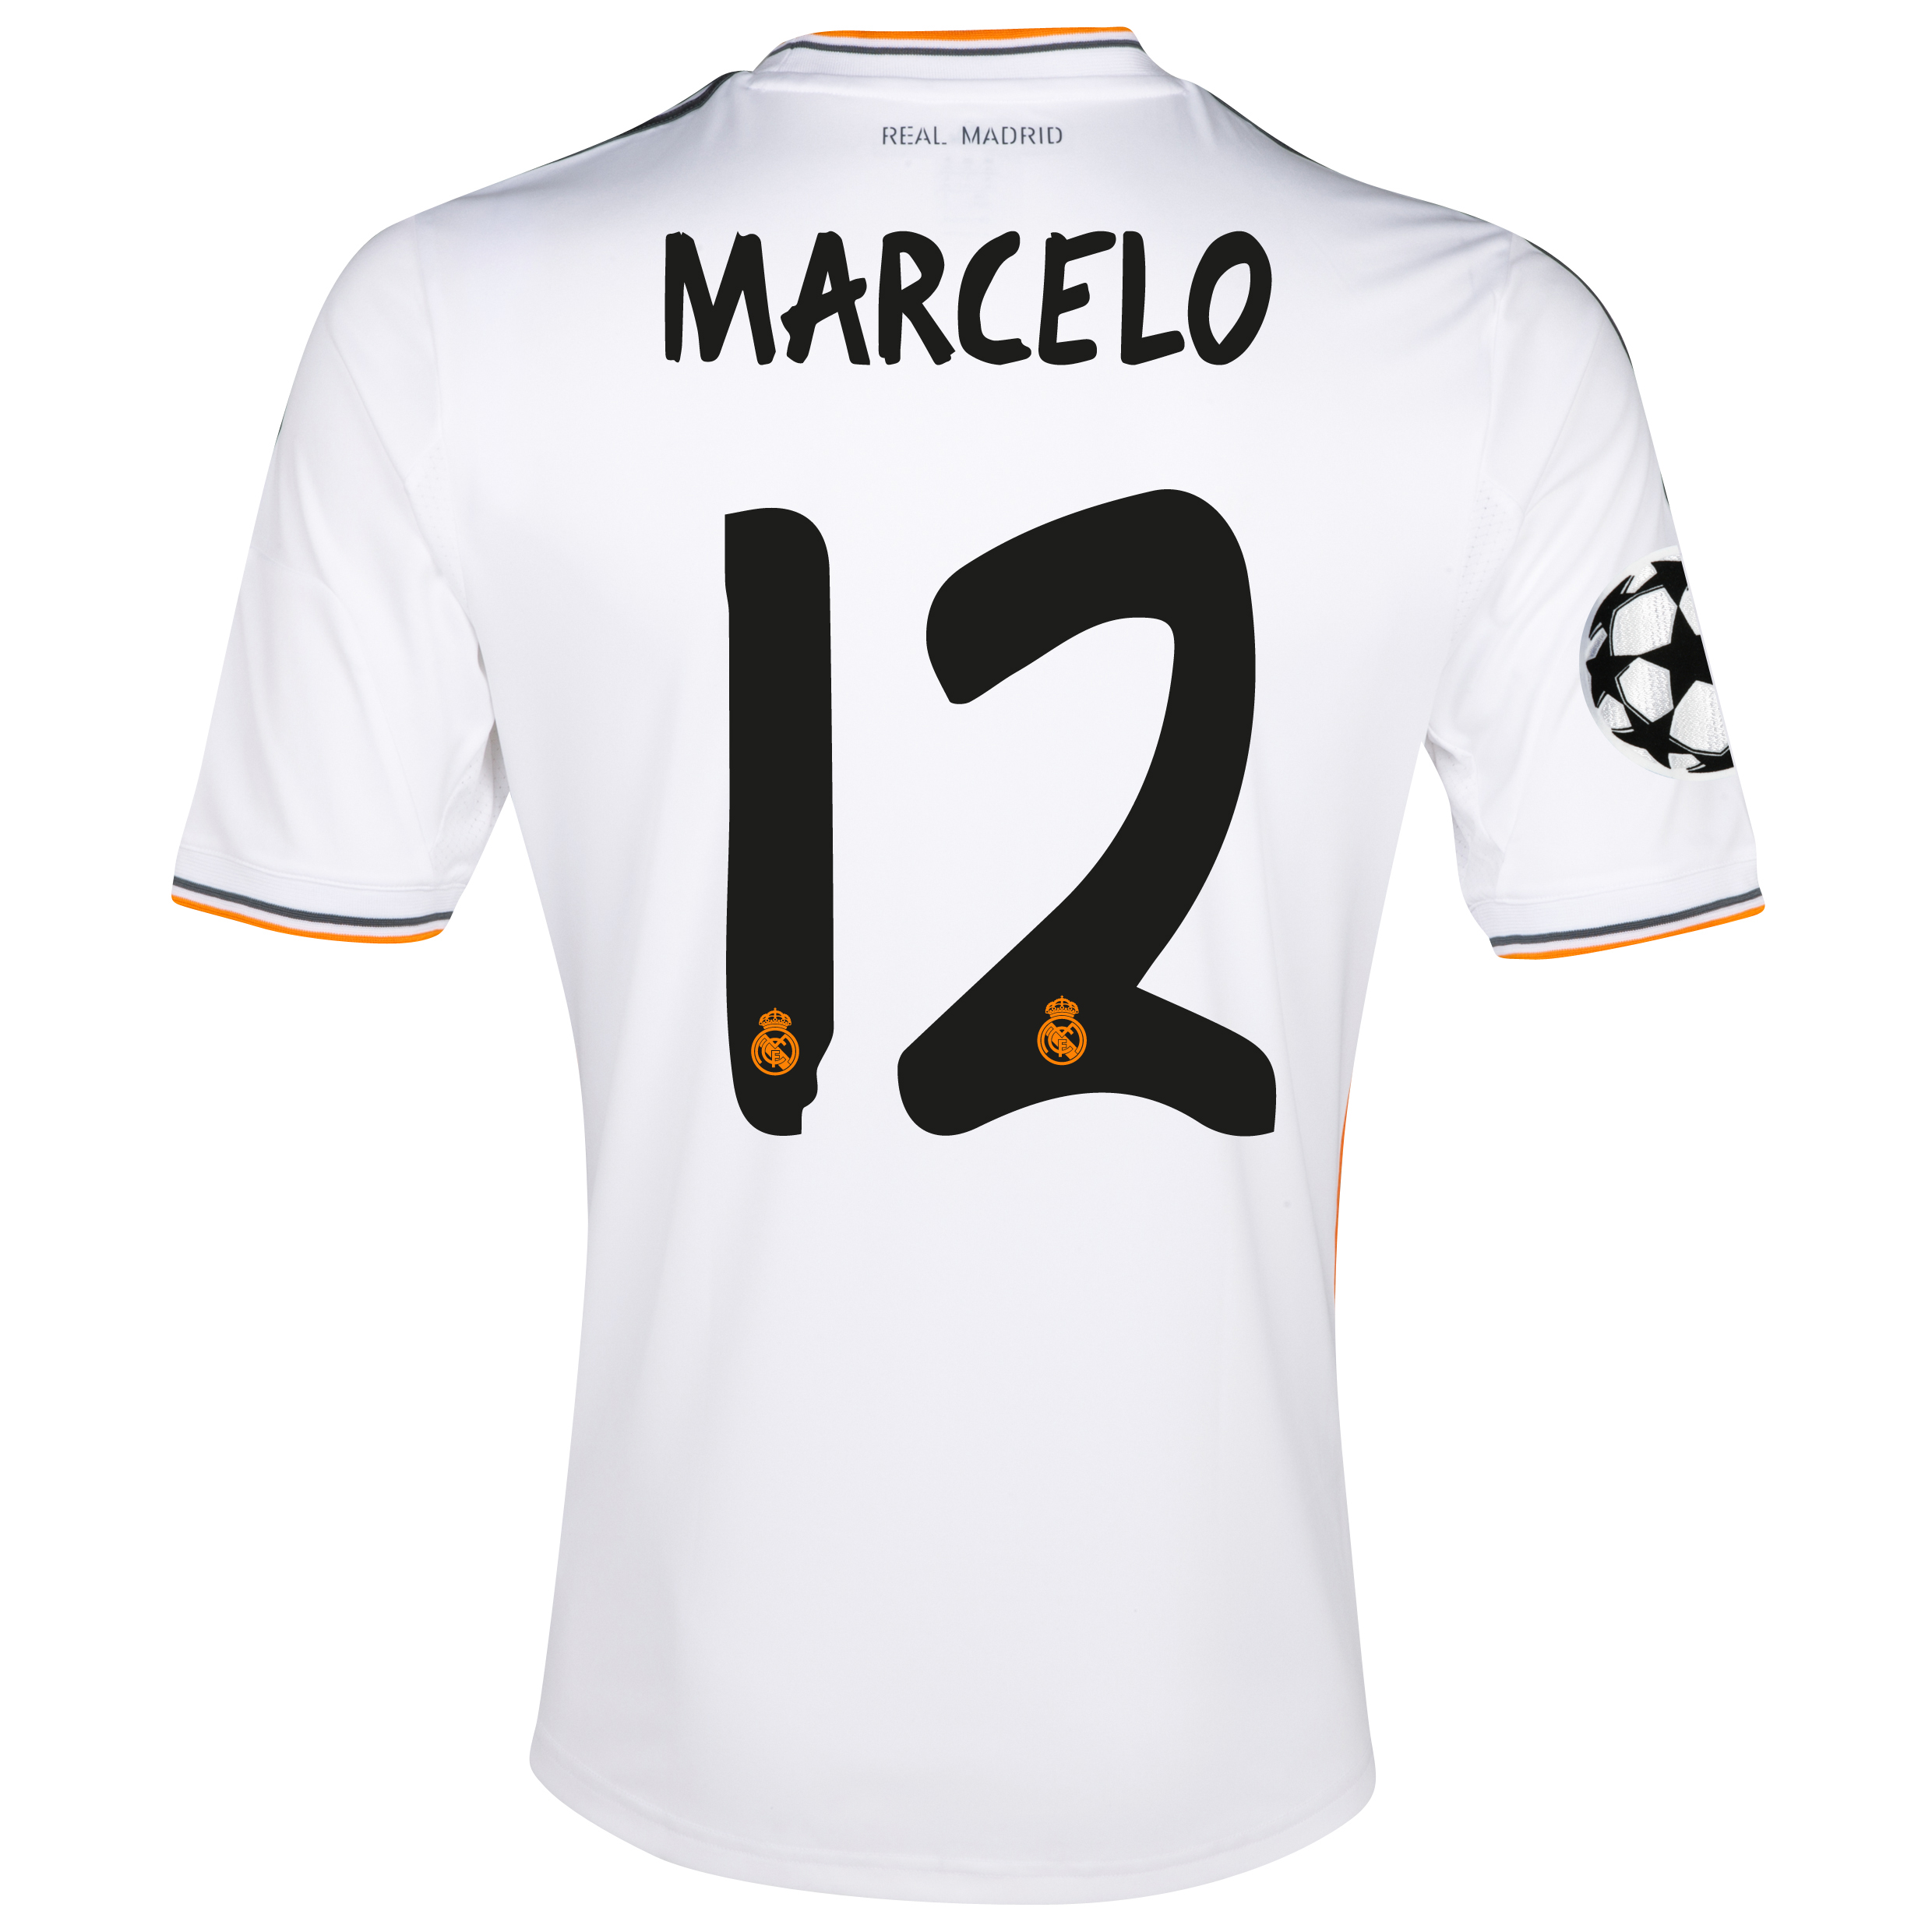 Real Madrid UEFA Champions League Home Shirt 2013/14 with Marcelo 12 printing